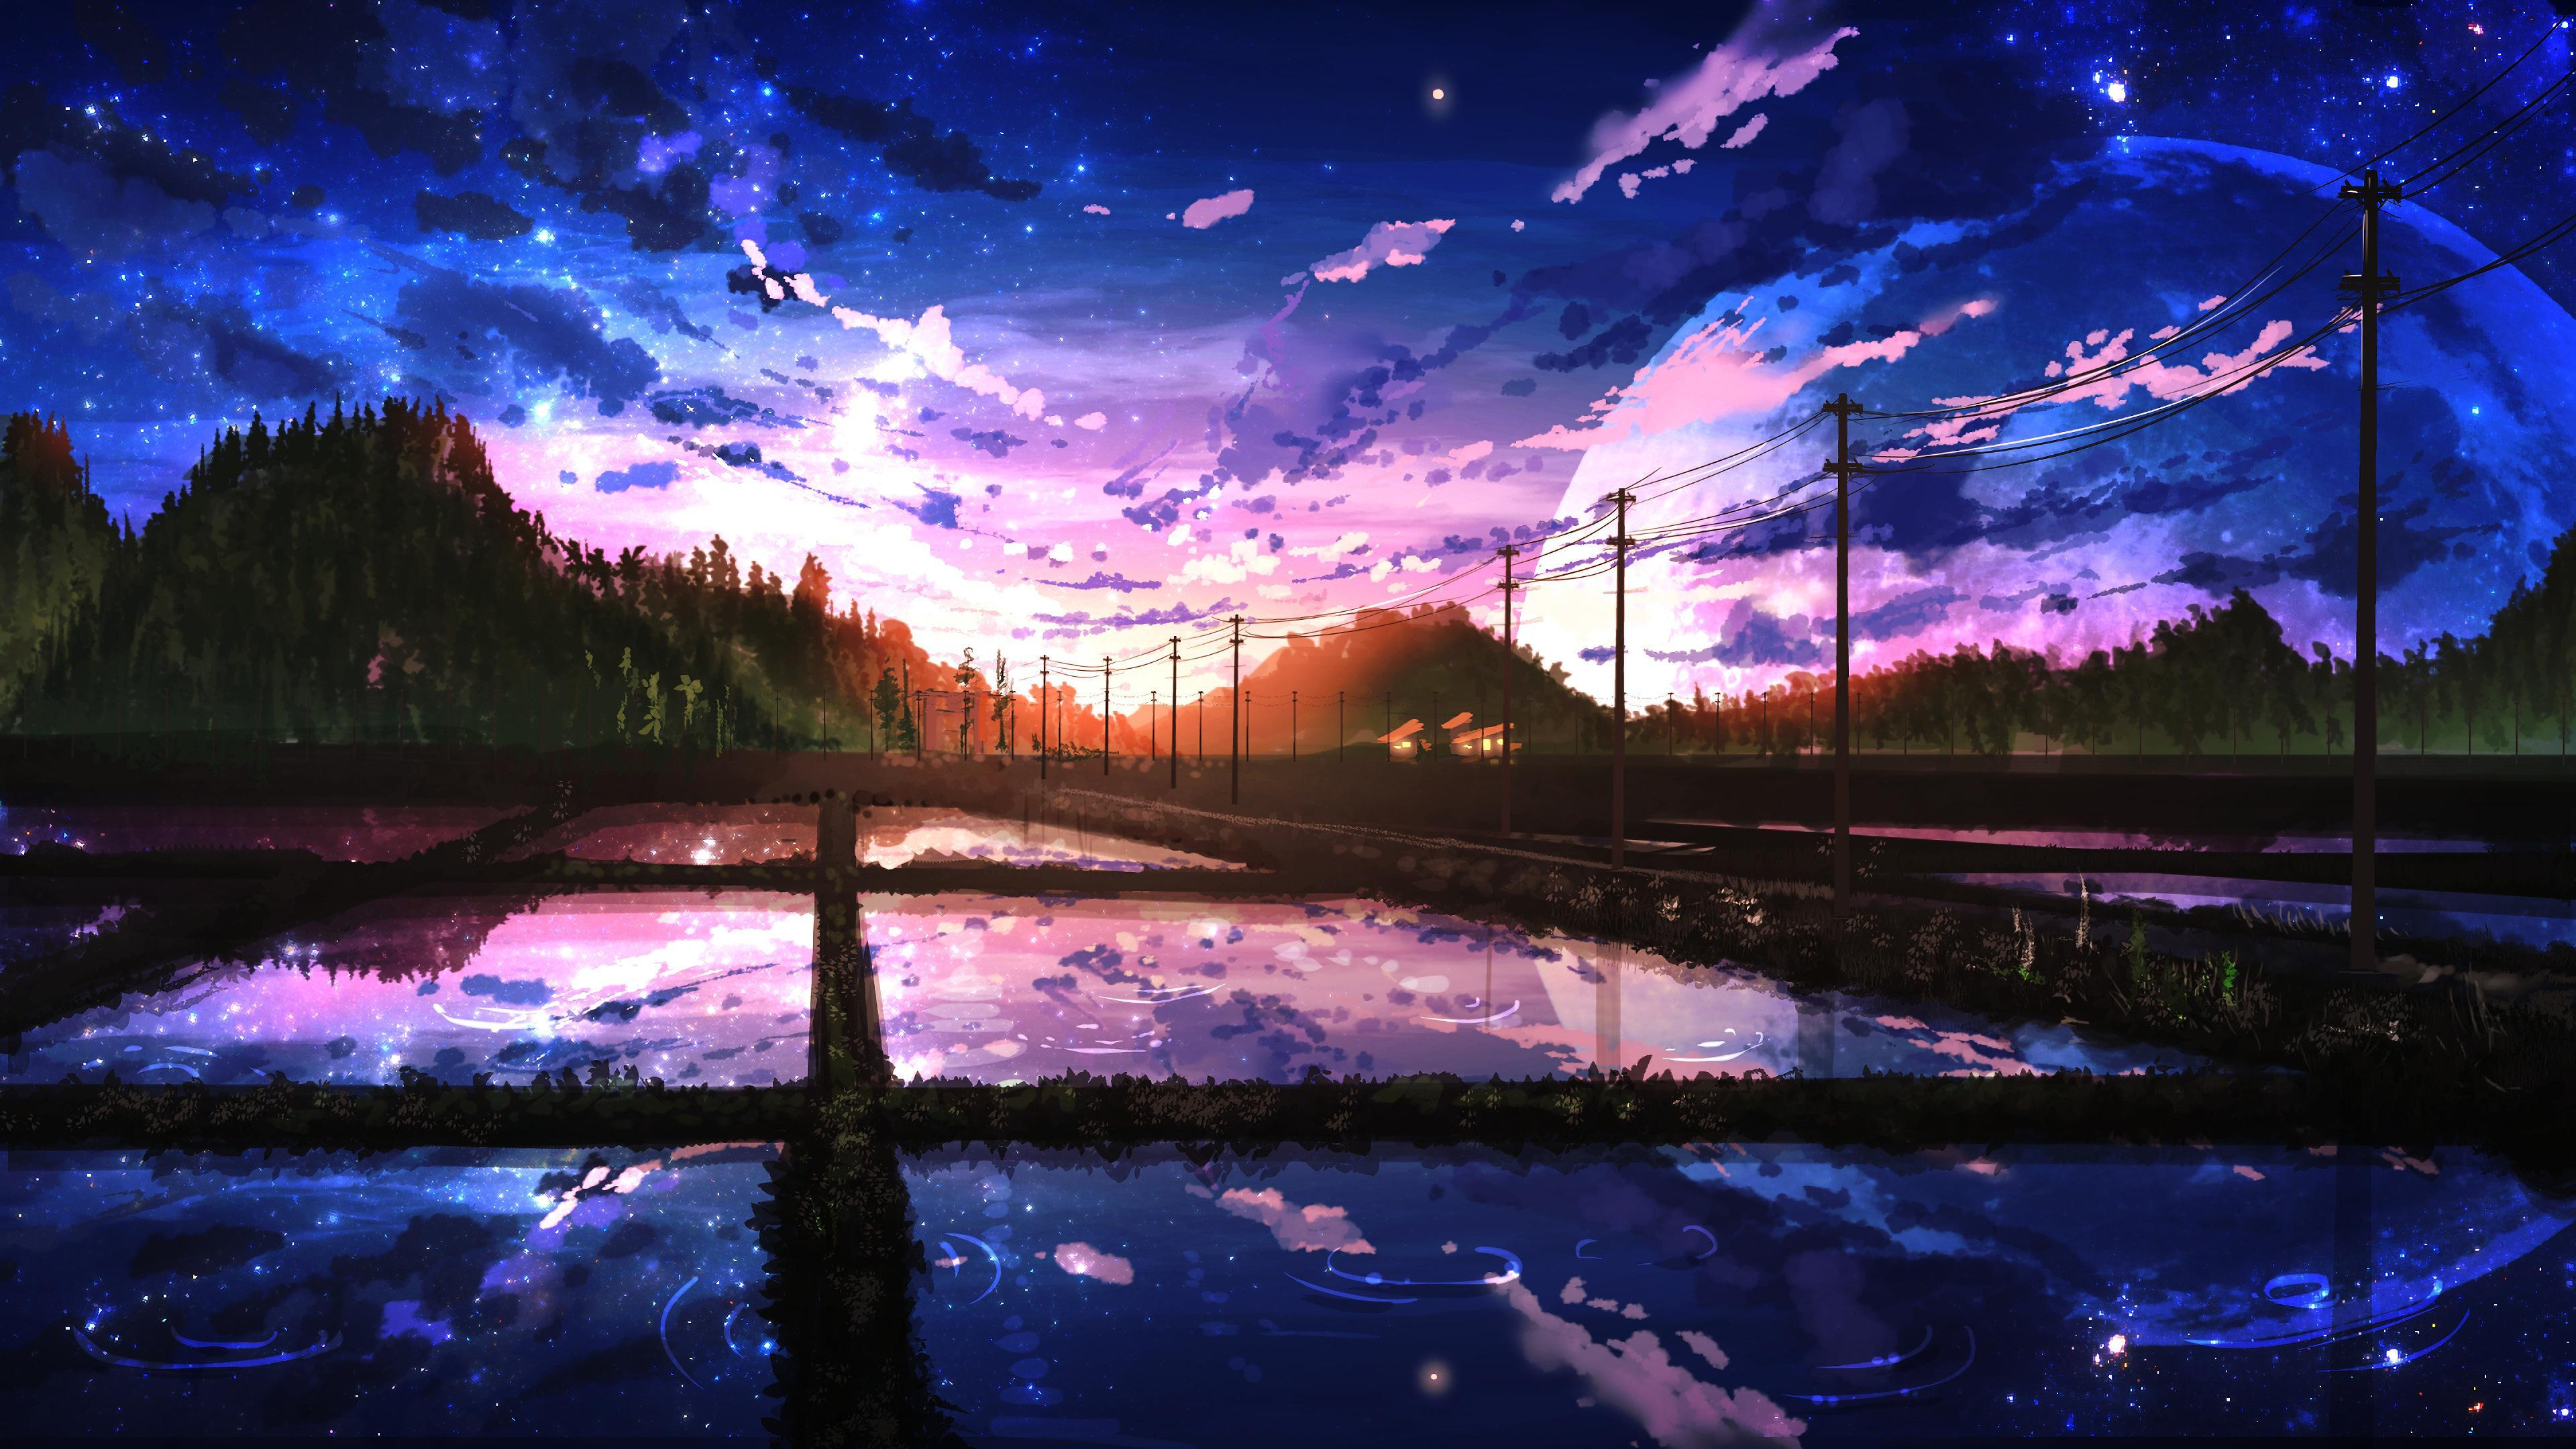 Beautiful Sky Anime Wallpapers - Wallpaper Cave